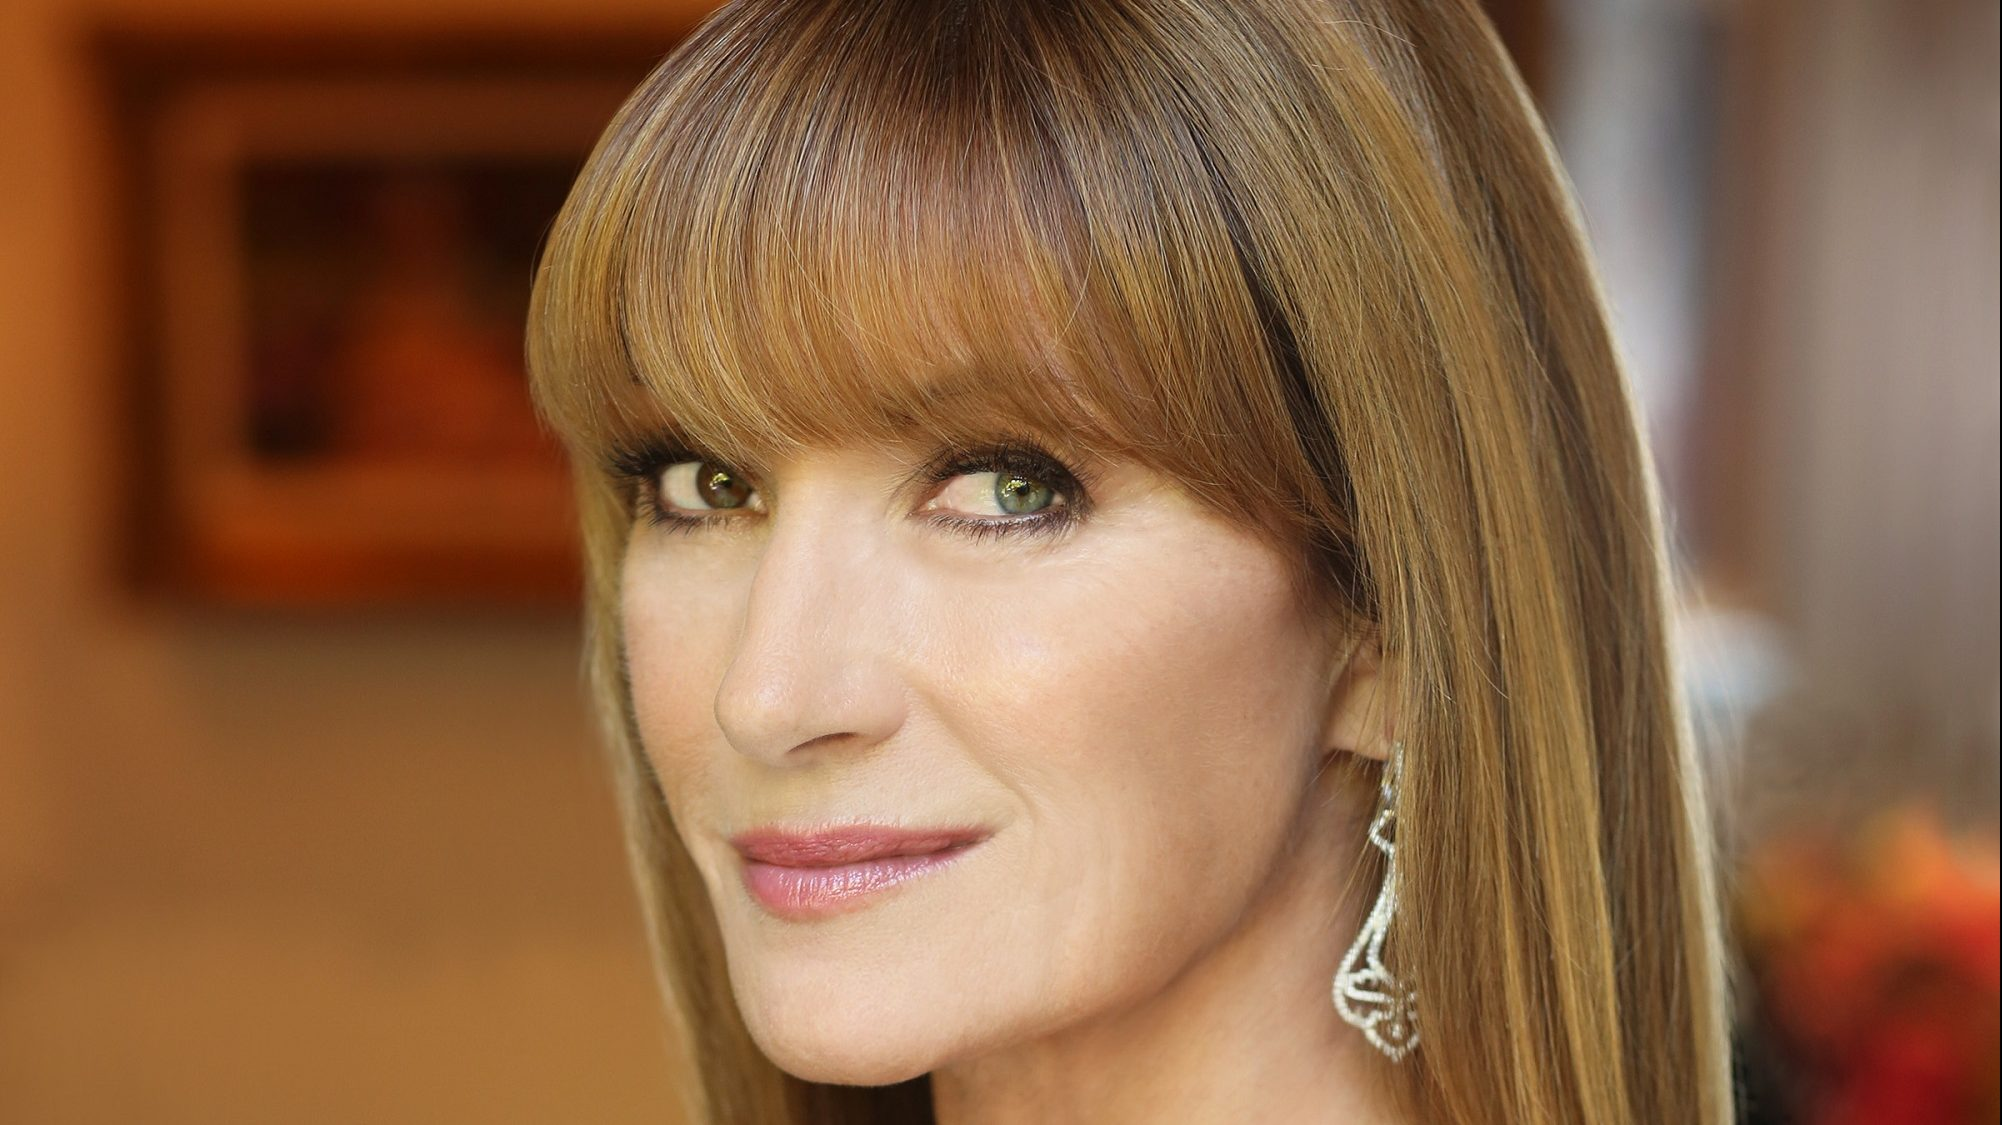 Jane Seymour To Headline Irish Mystery Series 'Harry Wild' For AMC Streamer Acorn TV